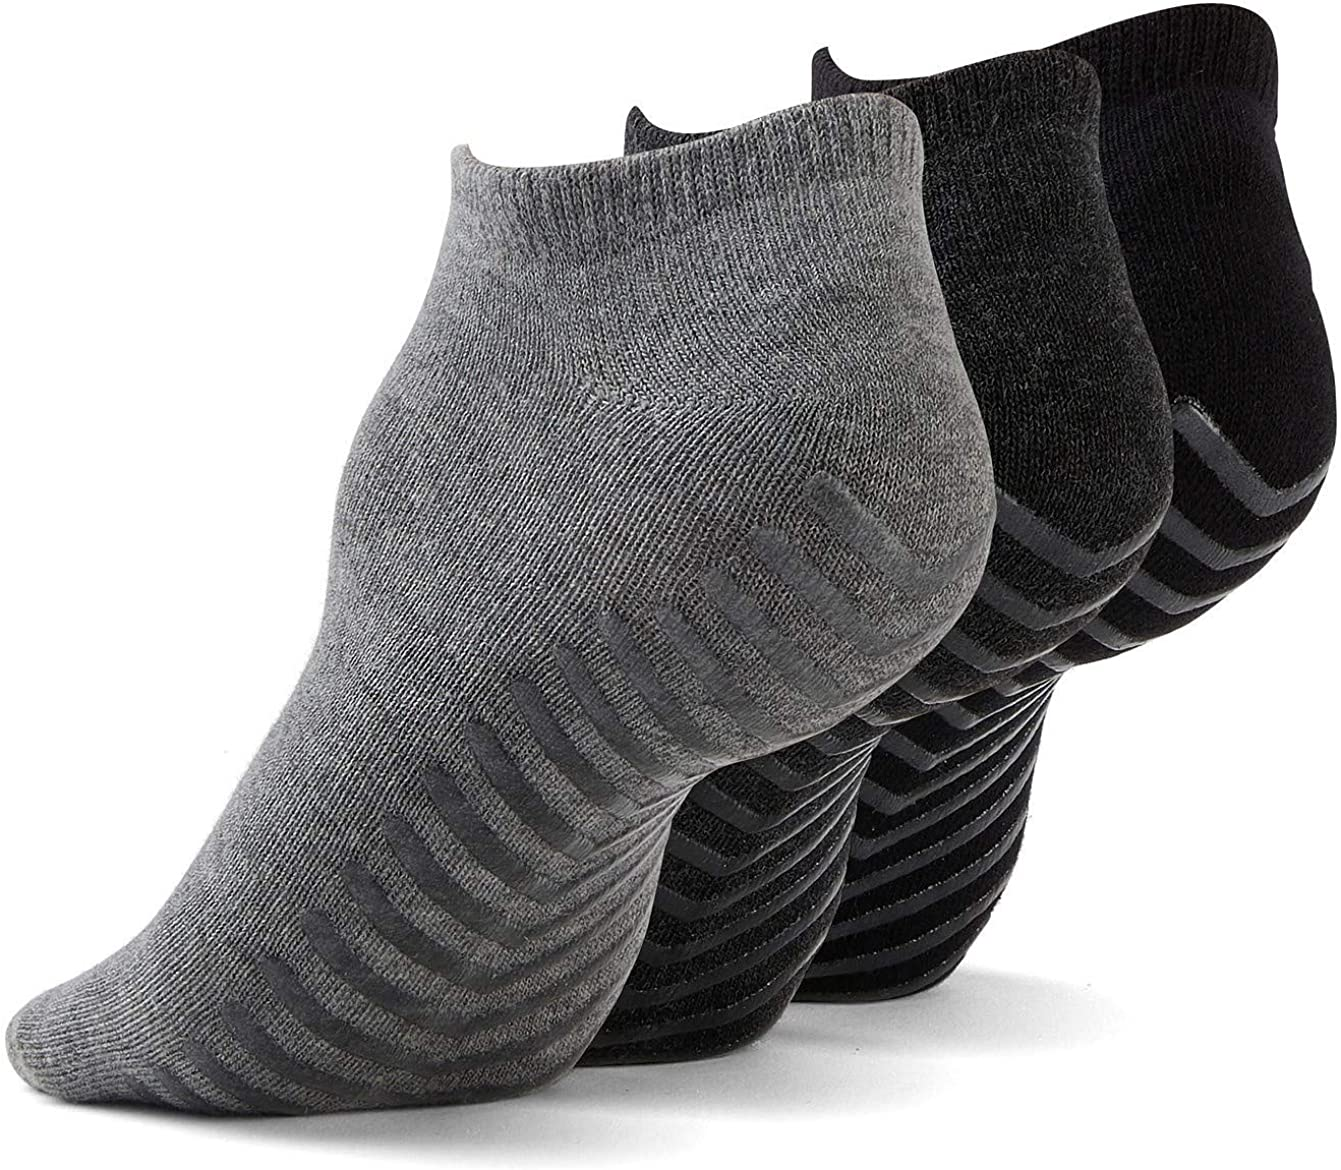 Non Slip Socks for Women or Men, Barre Socks With Grips, Non Skid Socks for Yoga, Hospital Socks (3 pairs)